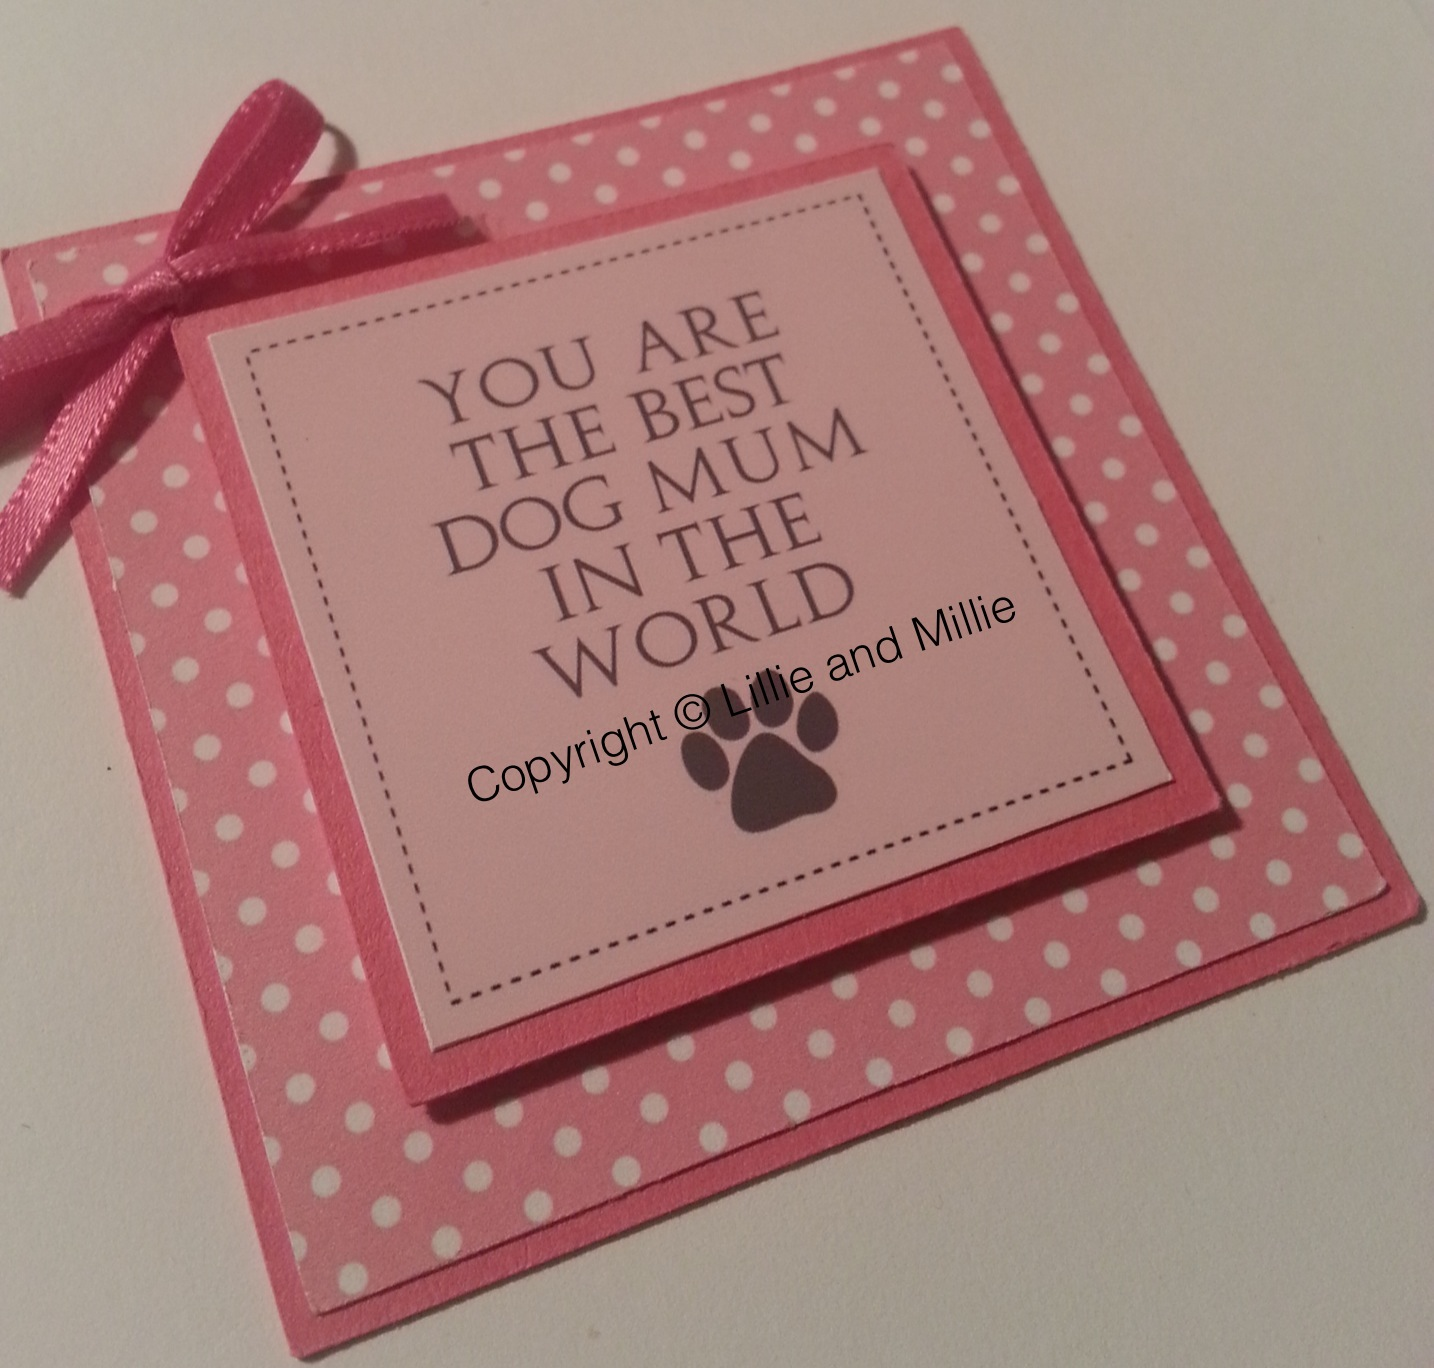 You Are The Best Dog Mum In The World Card